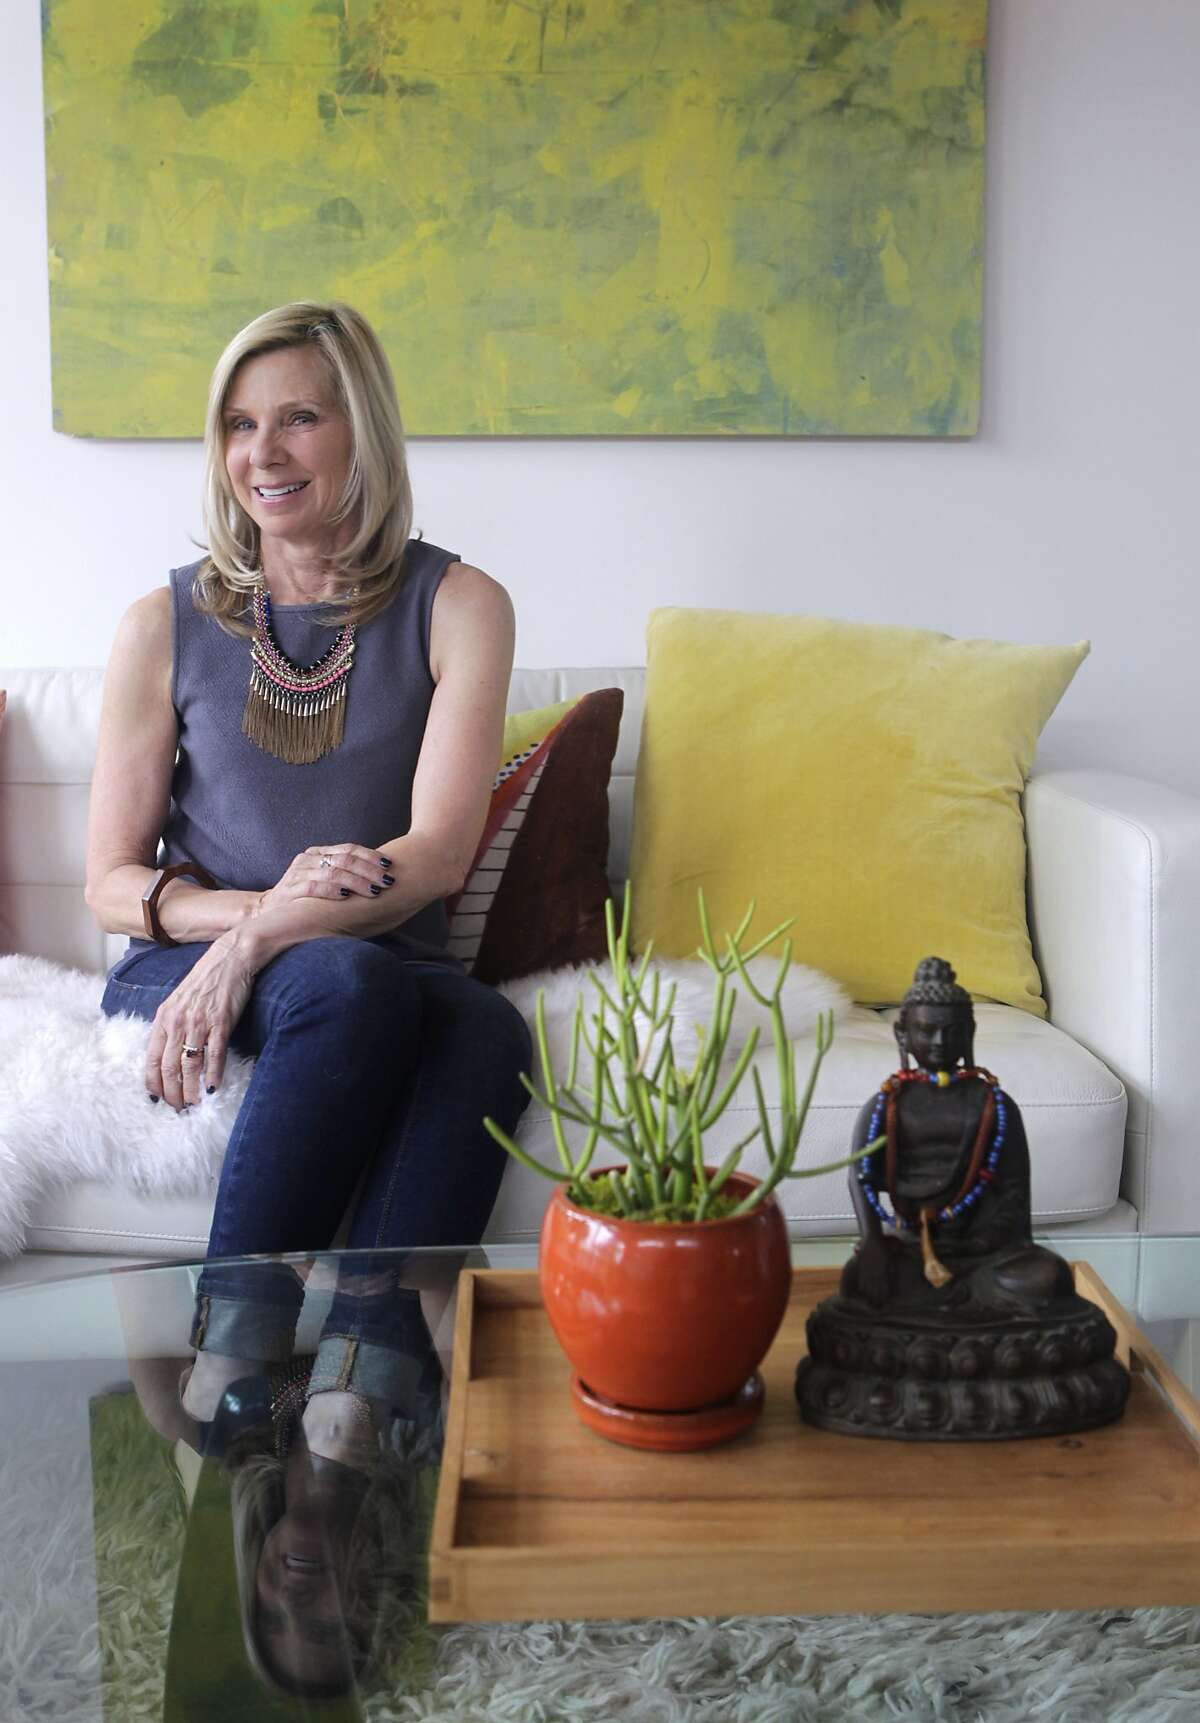 Interior designer Jill McCoy is seen at her home in Berkeley, Calif. on Wednesday, March 5, 2014.